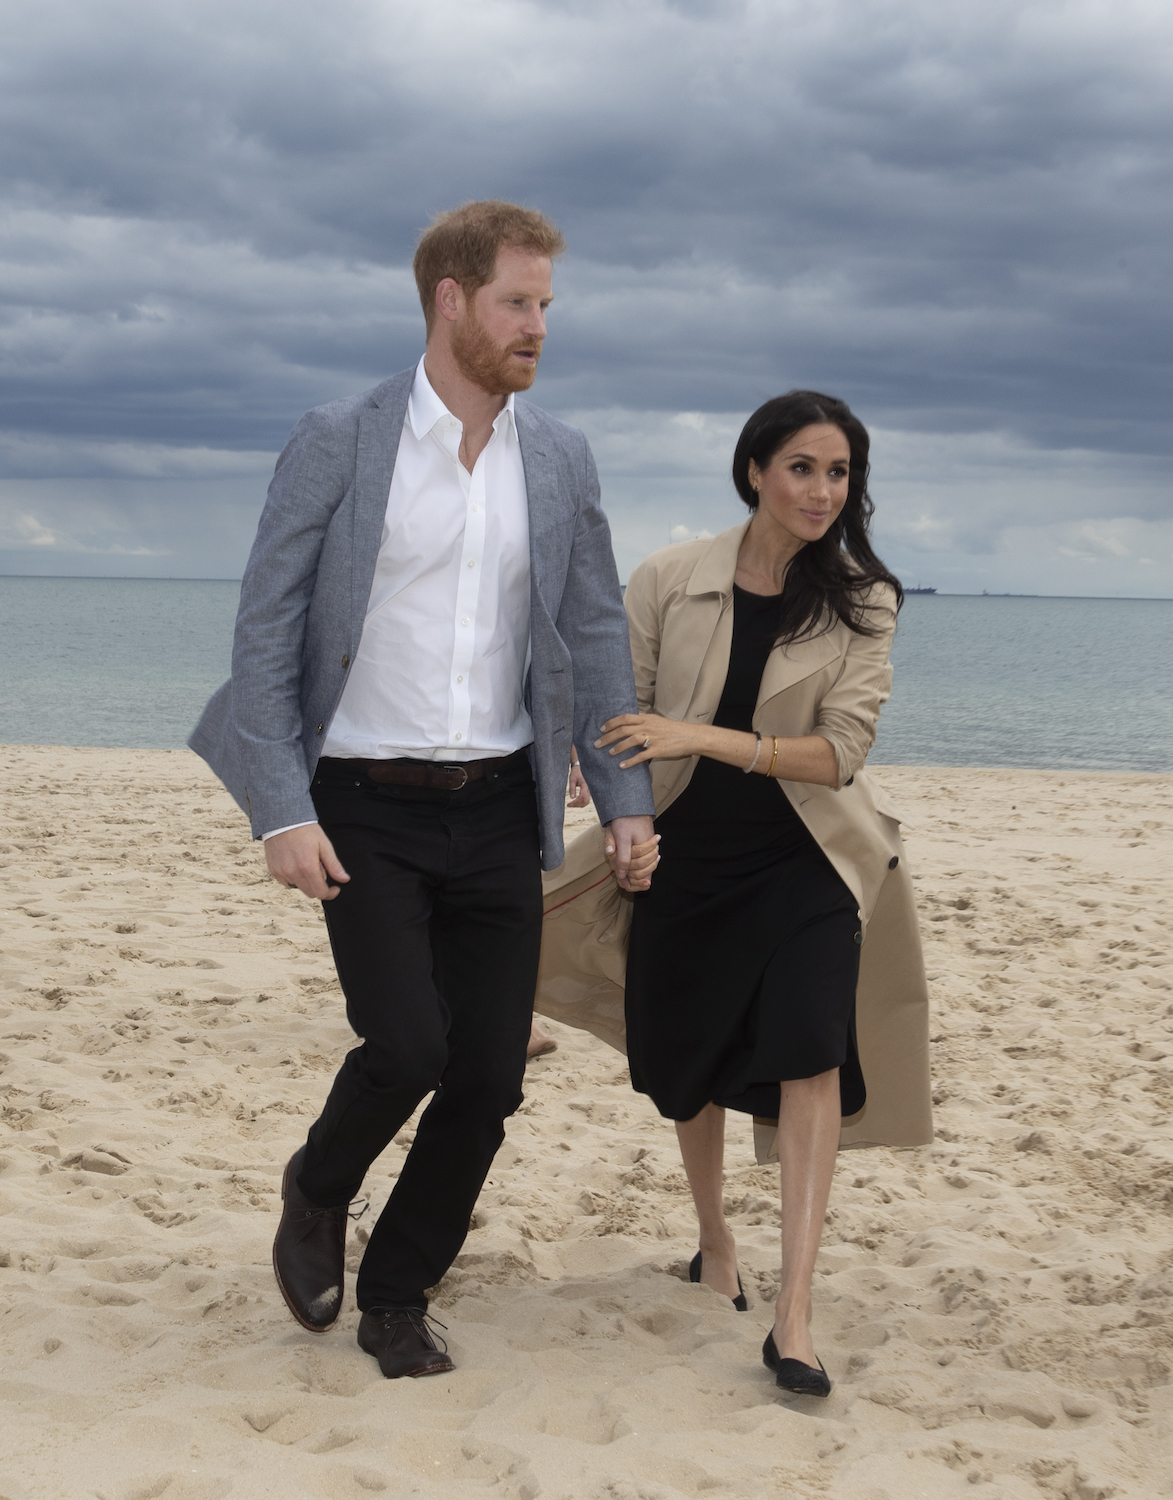 MELBOURNE, AUSTRALIA - OCTOBER 18: Prince Harry, Duke of Sussex and Meghan, Duchess of Sussex arrive at South Melbourne Beach on October 18, 2018 in Melbourne, Australia. BeachPatrol is a network of volunteers who are passionate about keeping Melbourne's beaches and foreshores clear of litter to reduce the negative impact of litter on the marine environment and food chain, and provide a safe environment for the public to enjoy their local beach.The Duke and Duchess of Sussex are on their official 16-day Autumn tour visiting cities in Australia, Fiji, Tonga and New Zealand. (Photo by Ian Vogler - Pool/Getty Images)